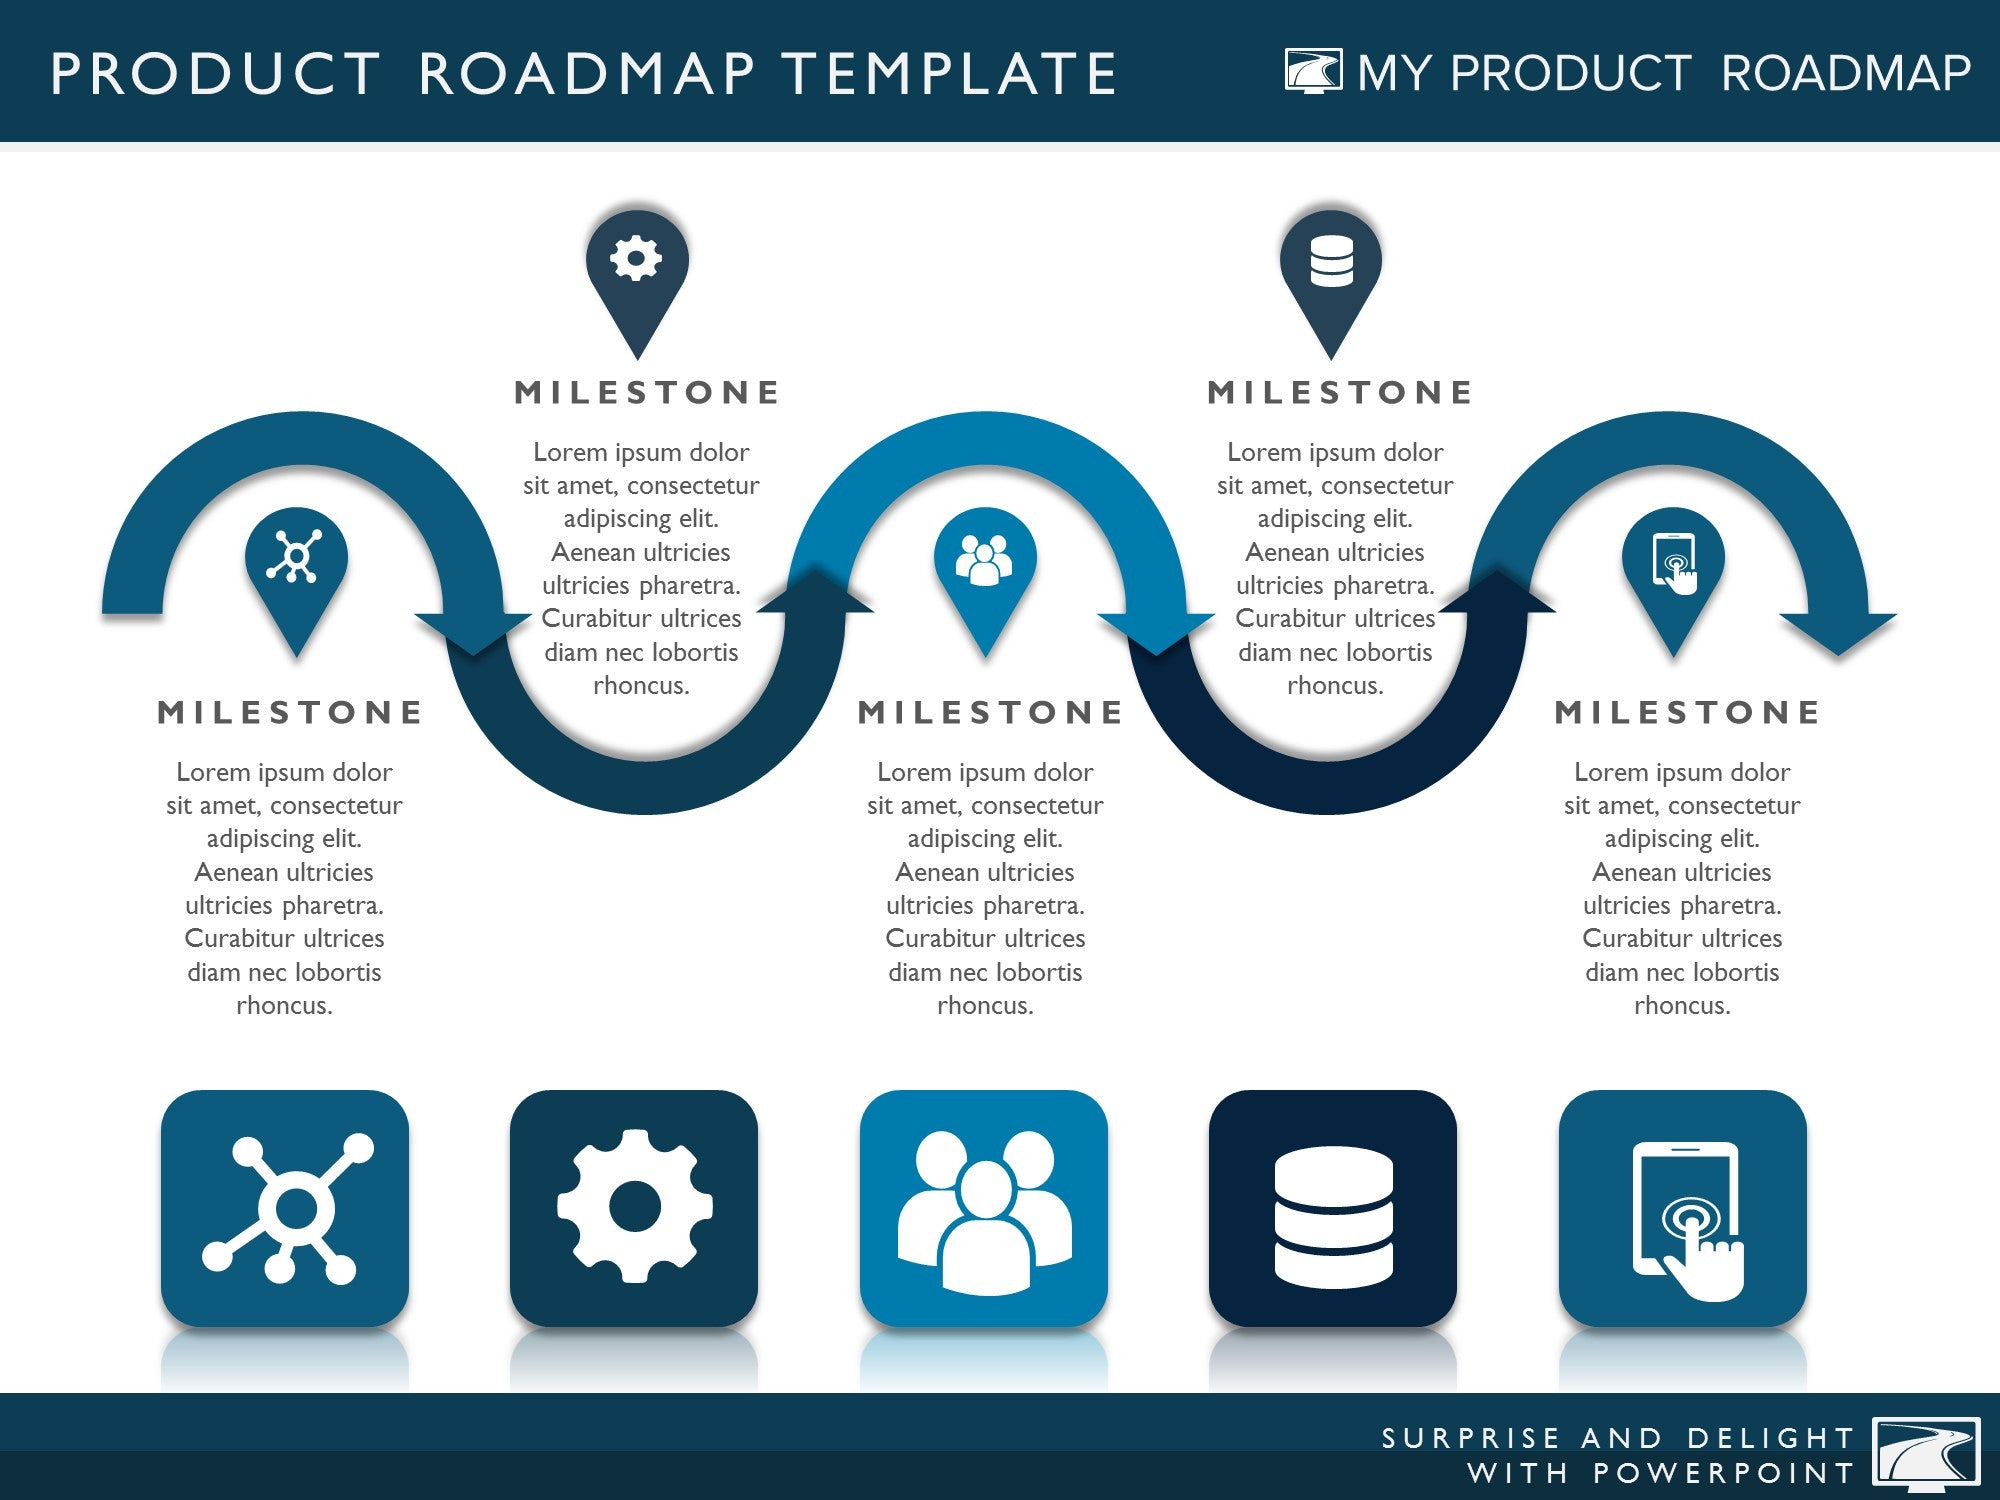 Product Roadmap Templates For Powerpoint - Sample business roadmap template